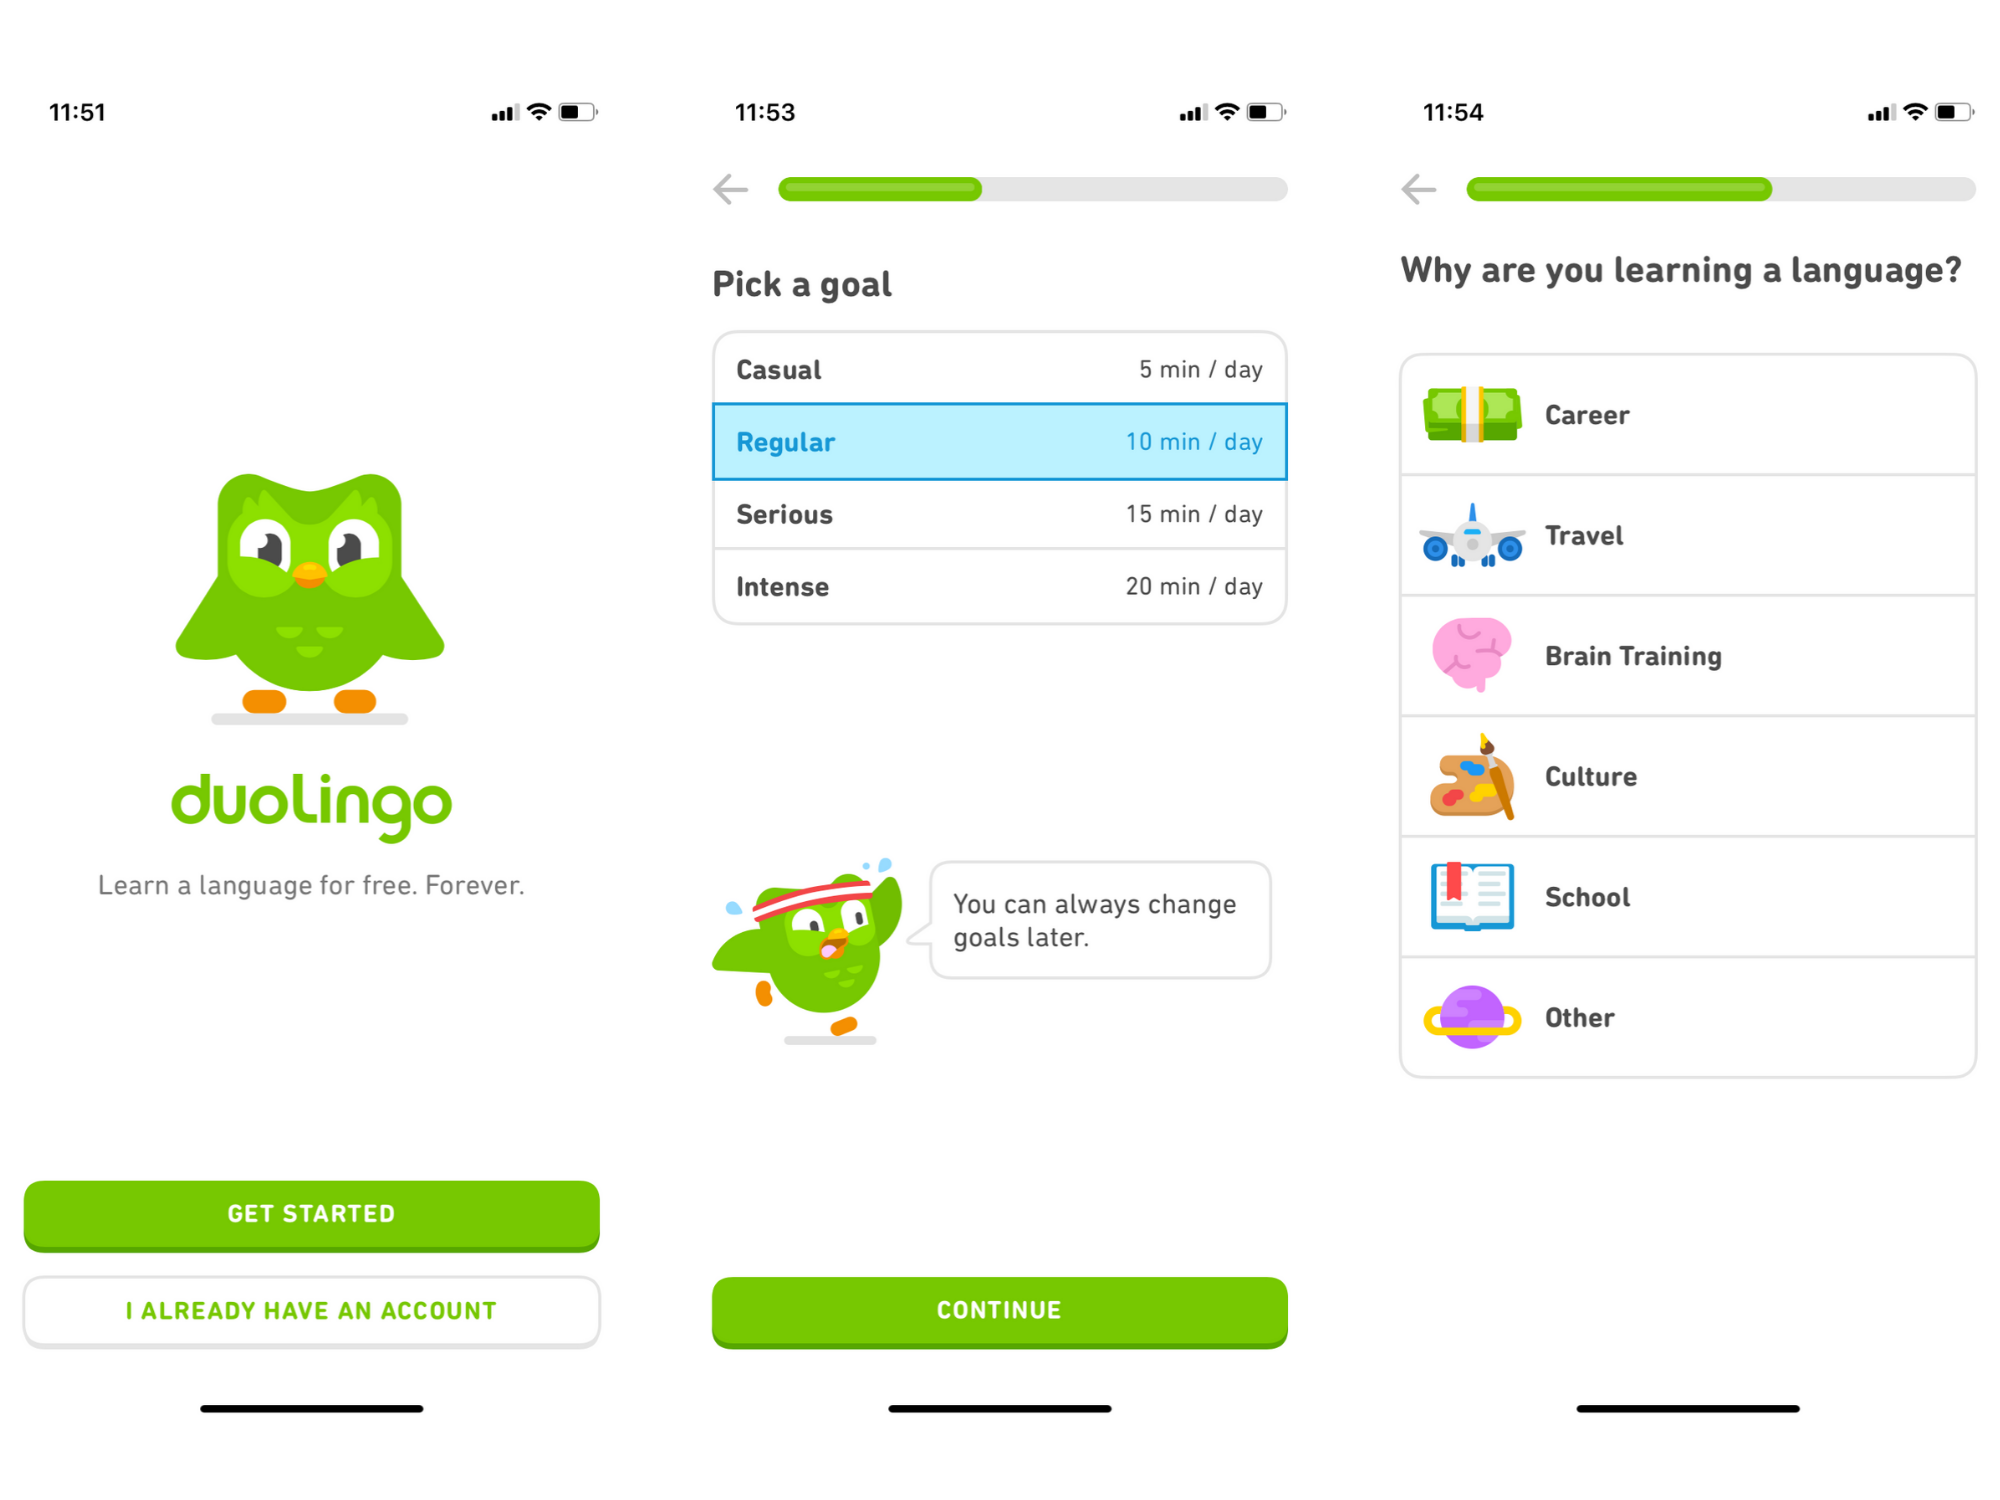 duolingo user onboarding experience